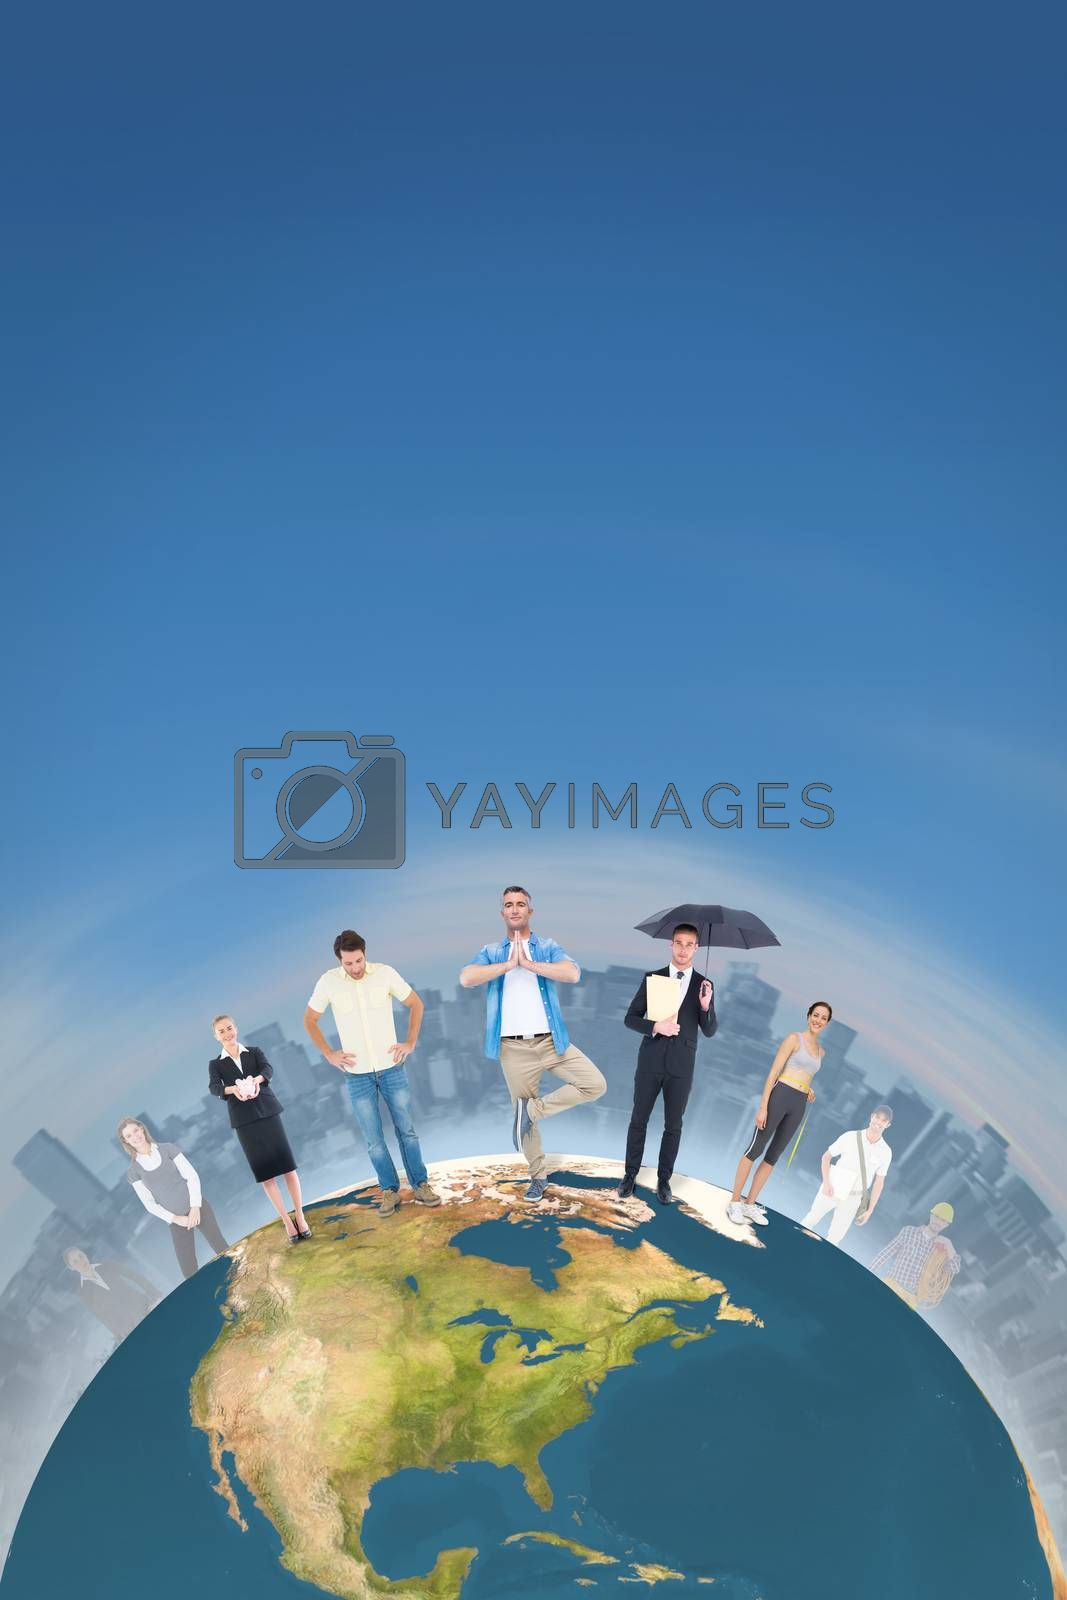 People standing on the world against stony path leading to large city on the horizon